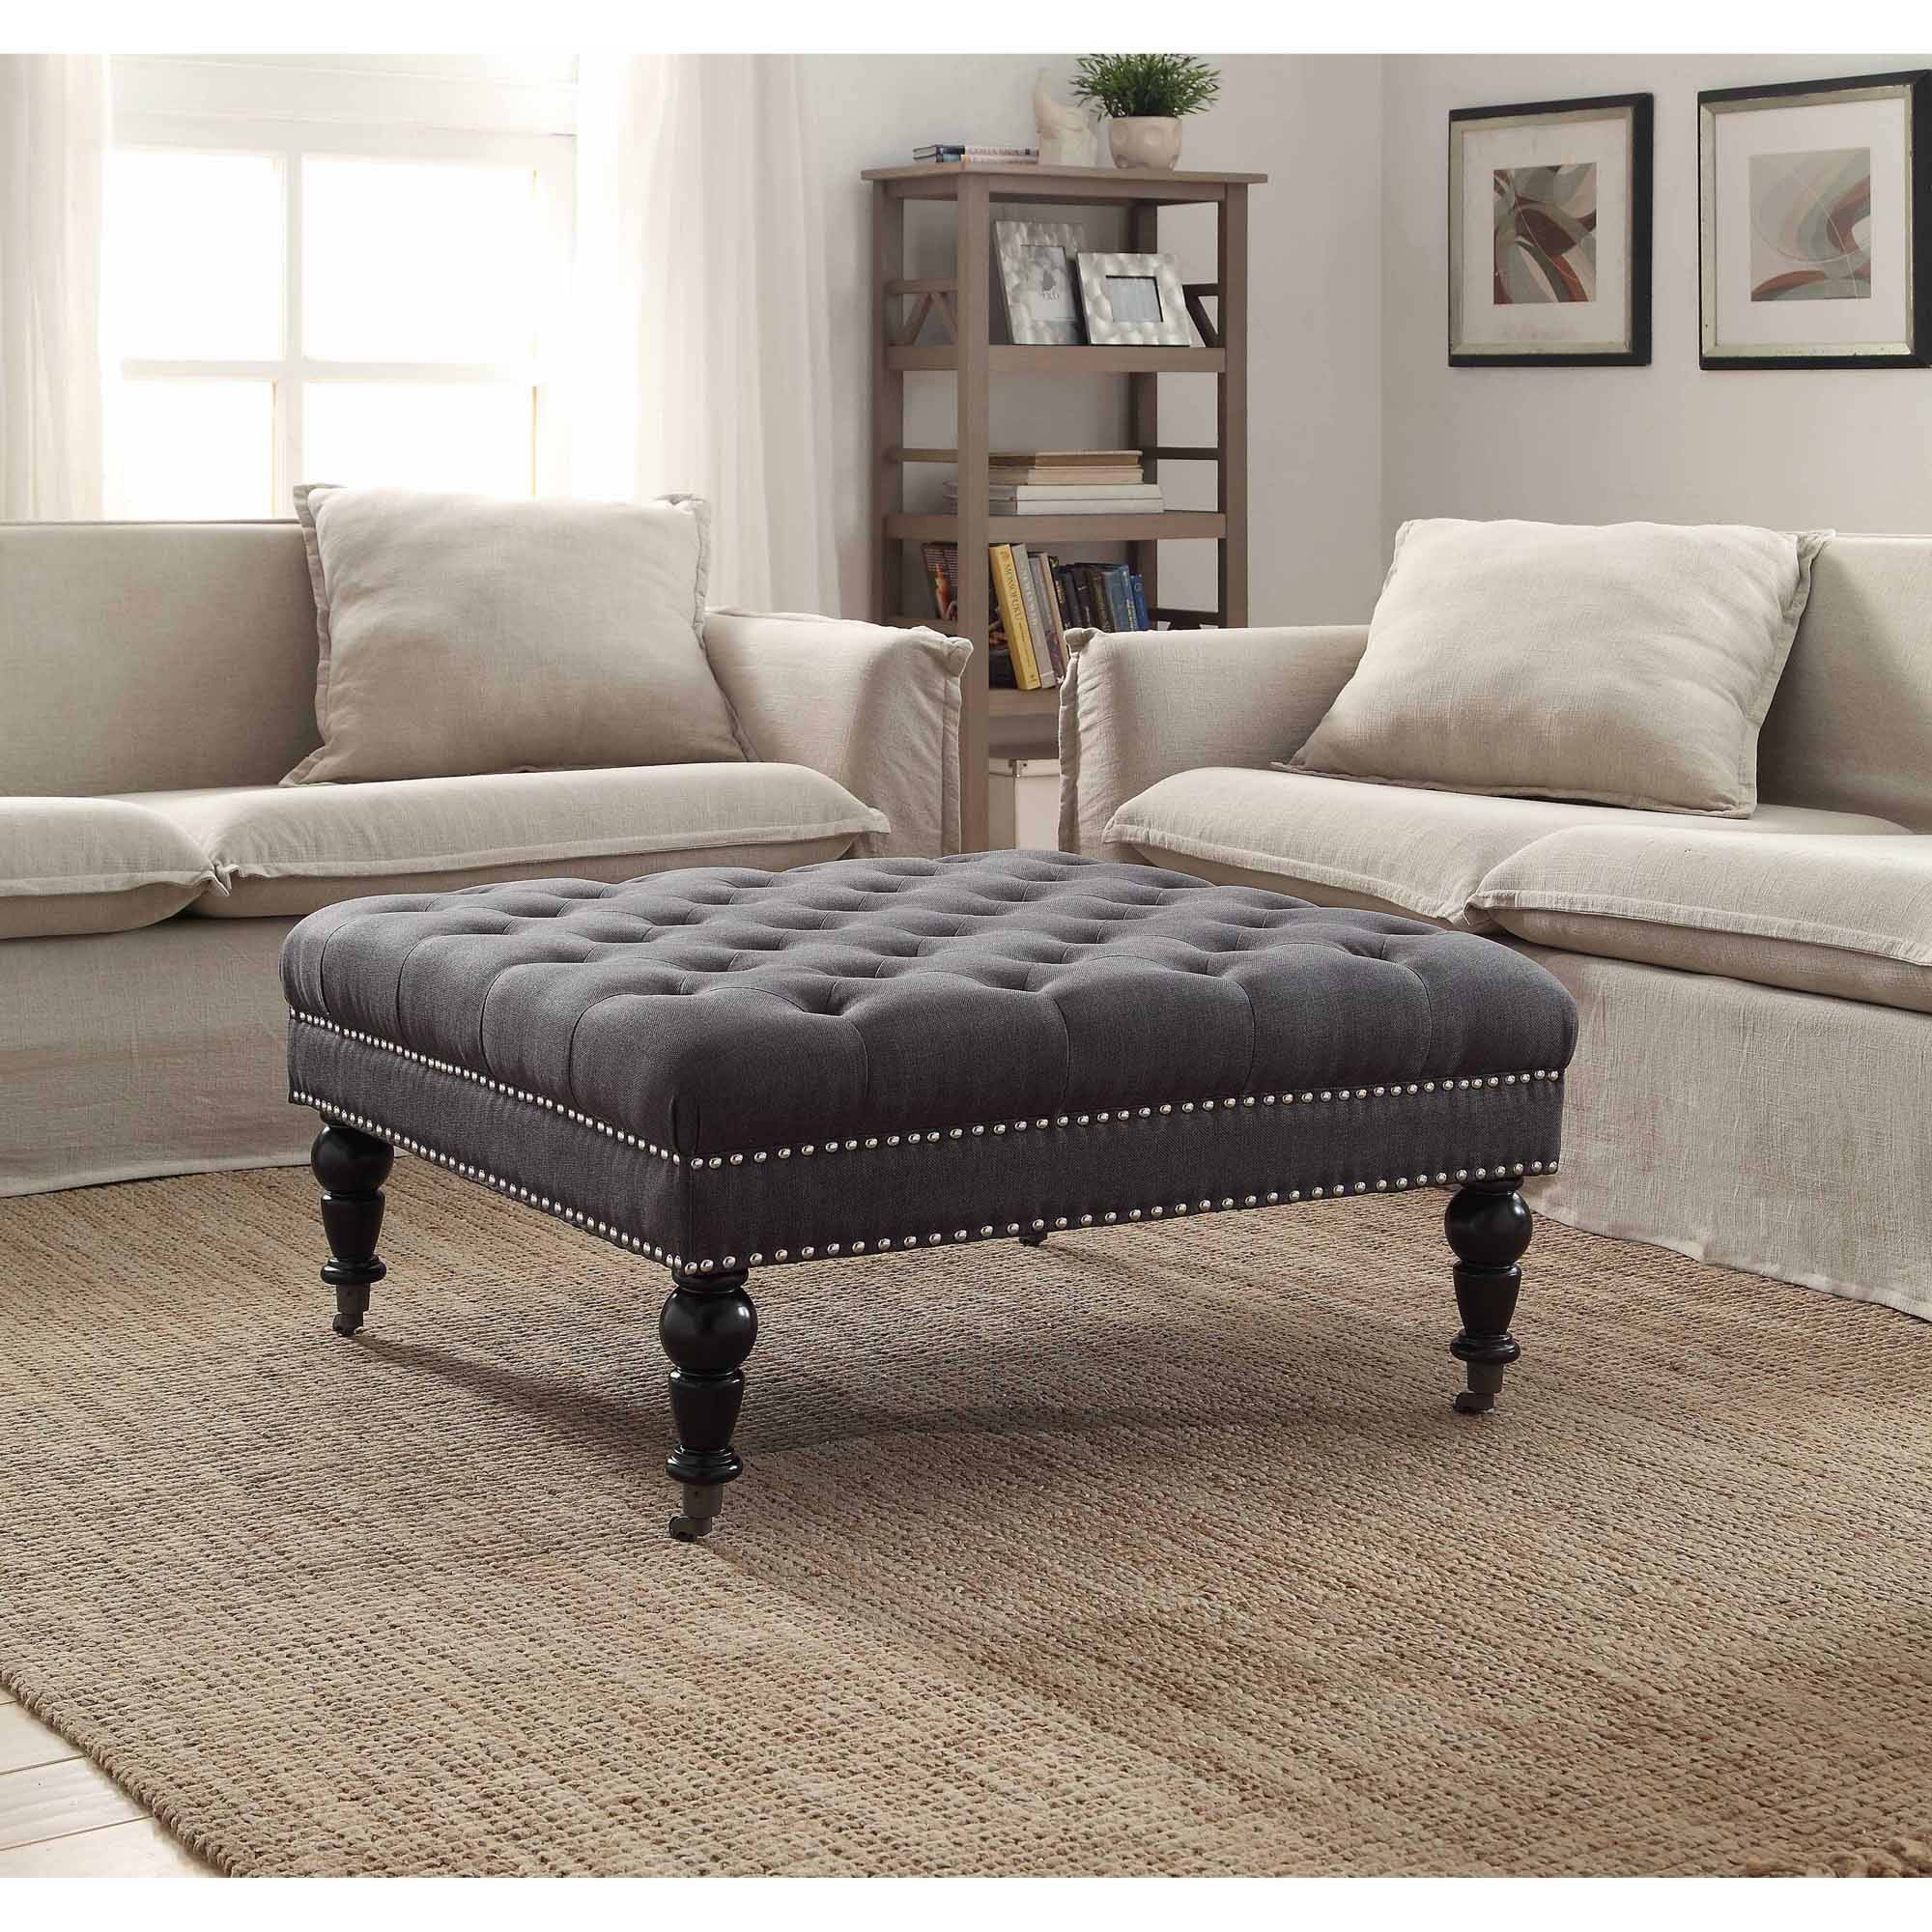 tufted ottoman - linon isabelle square tufted ottoman multiple colors